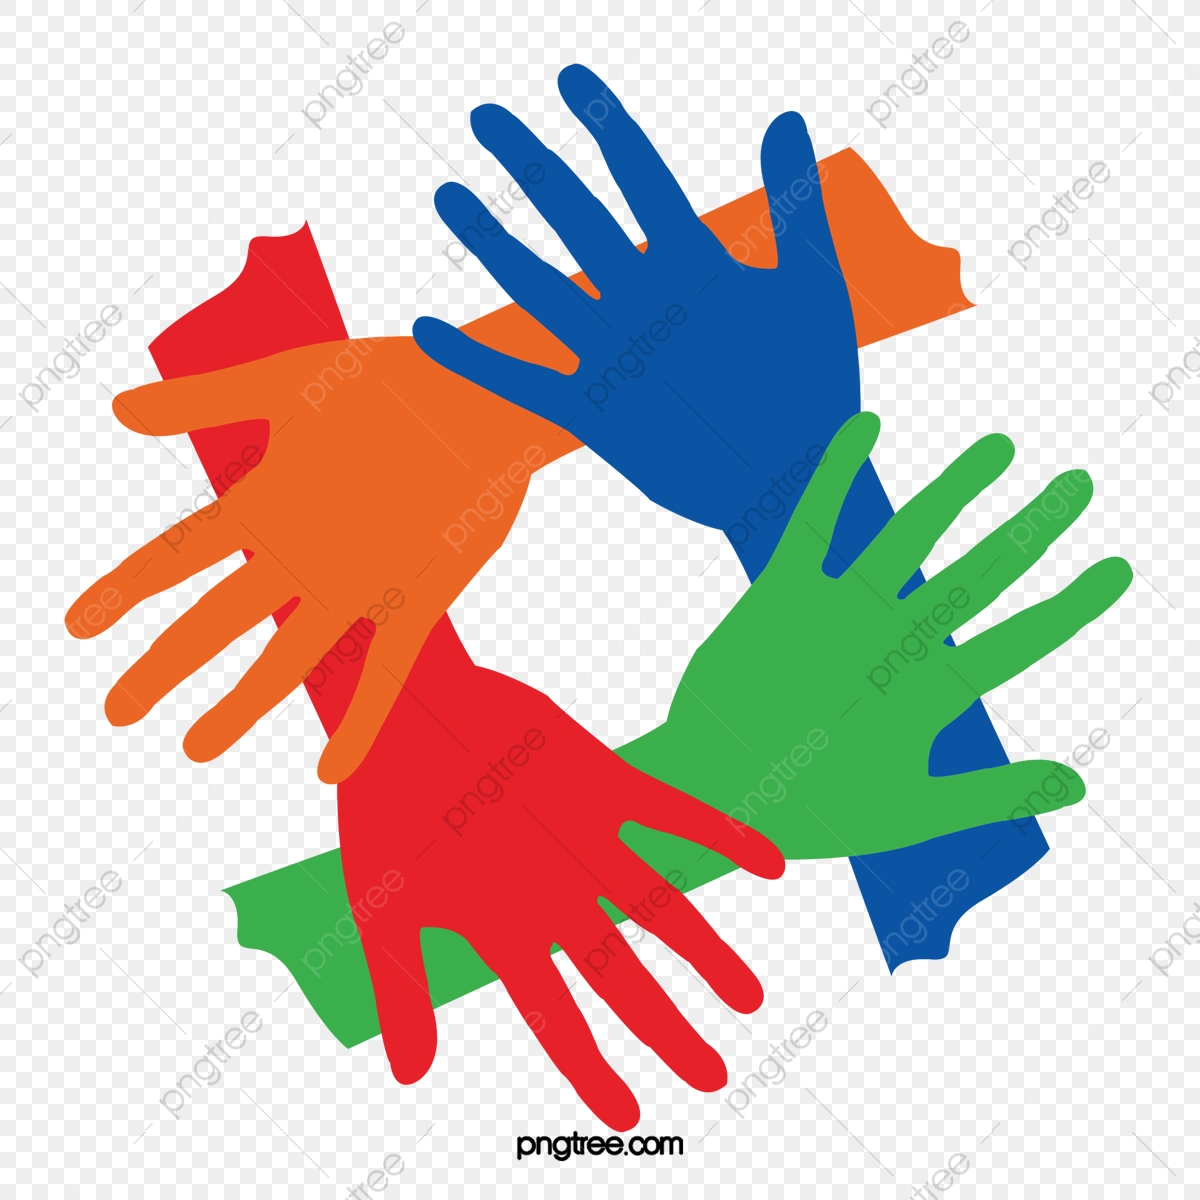 Gesture Of Solidarity, Hand, Unity, Cooperation PNG and Vector with